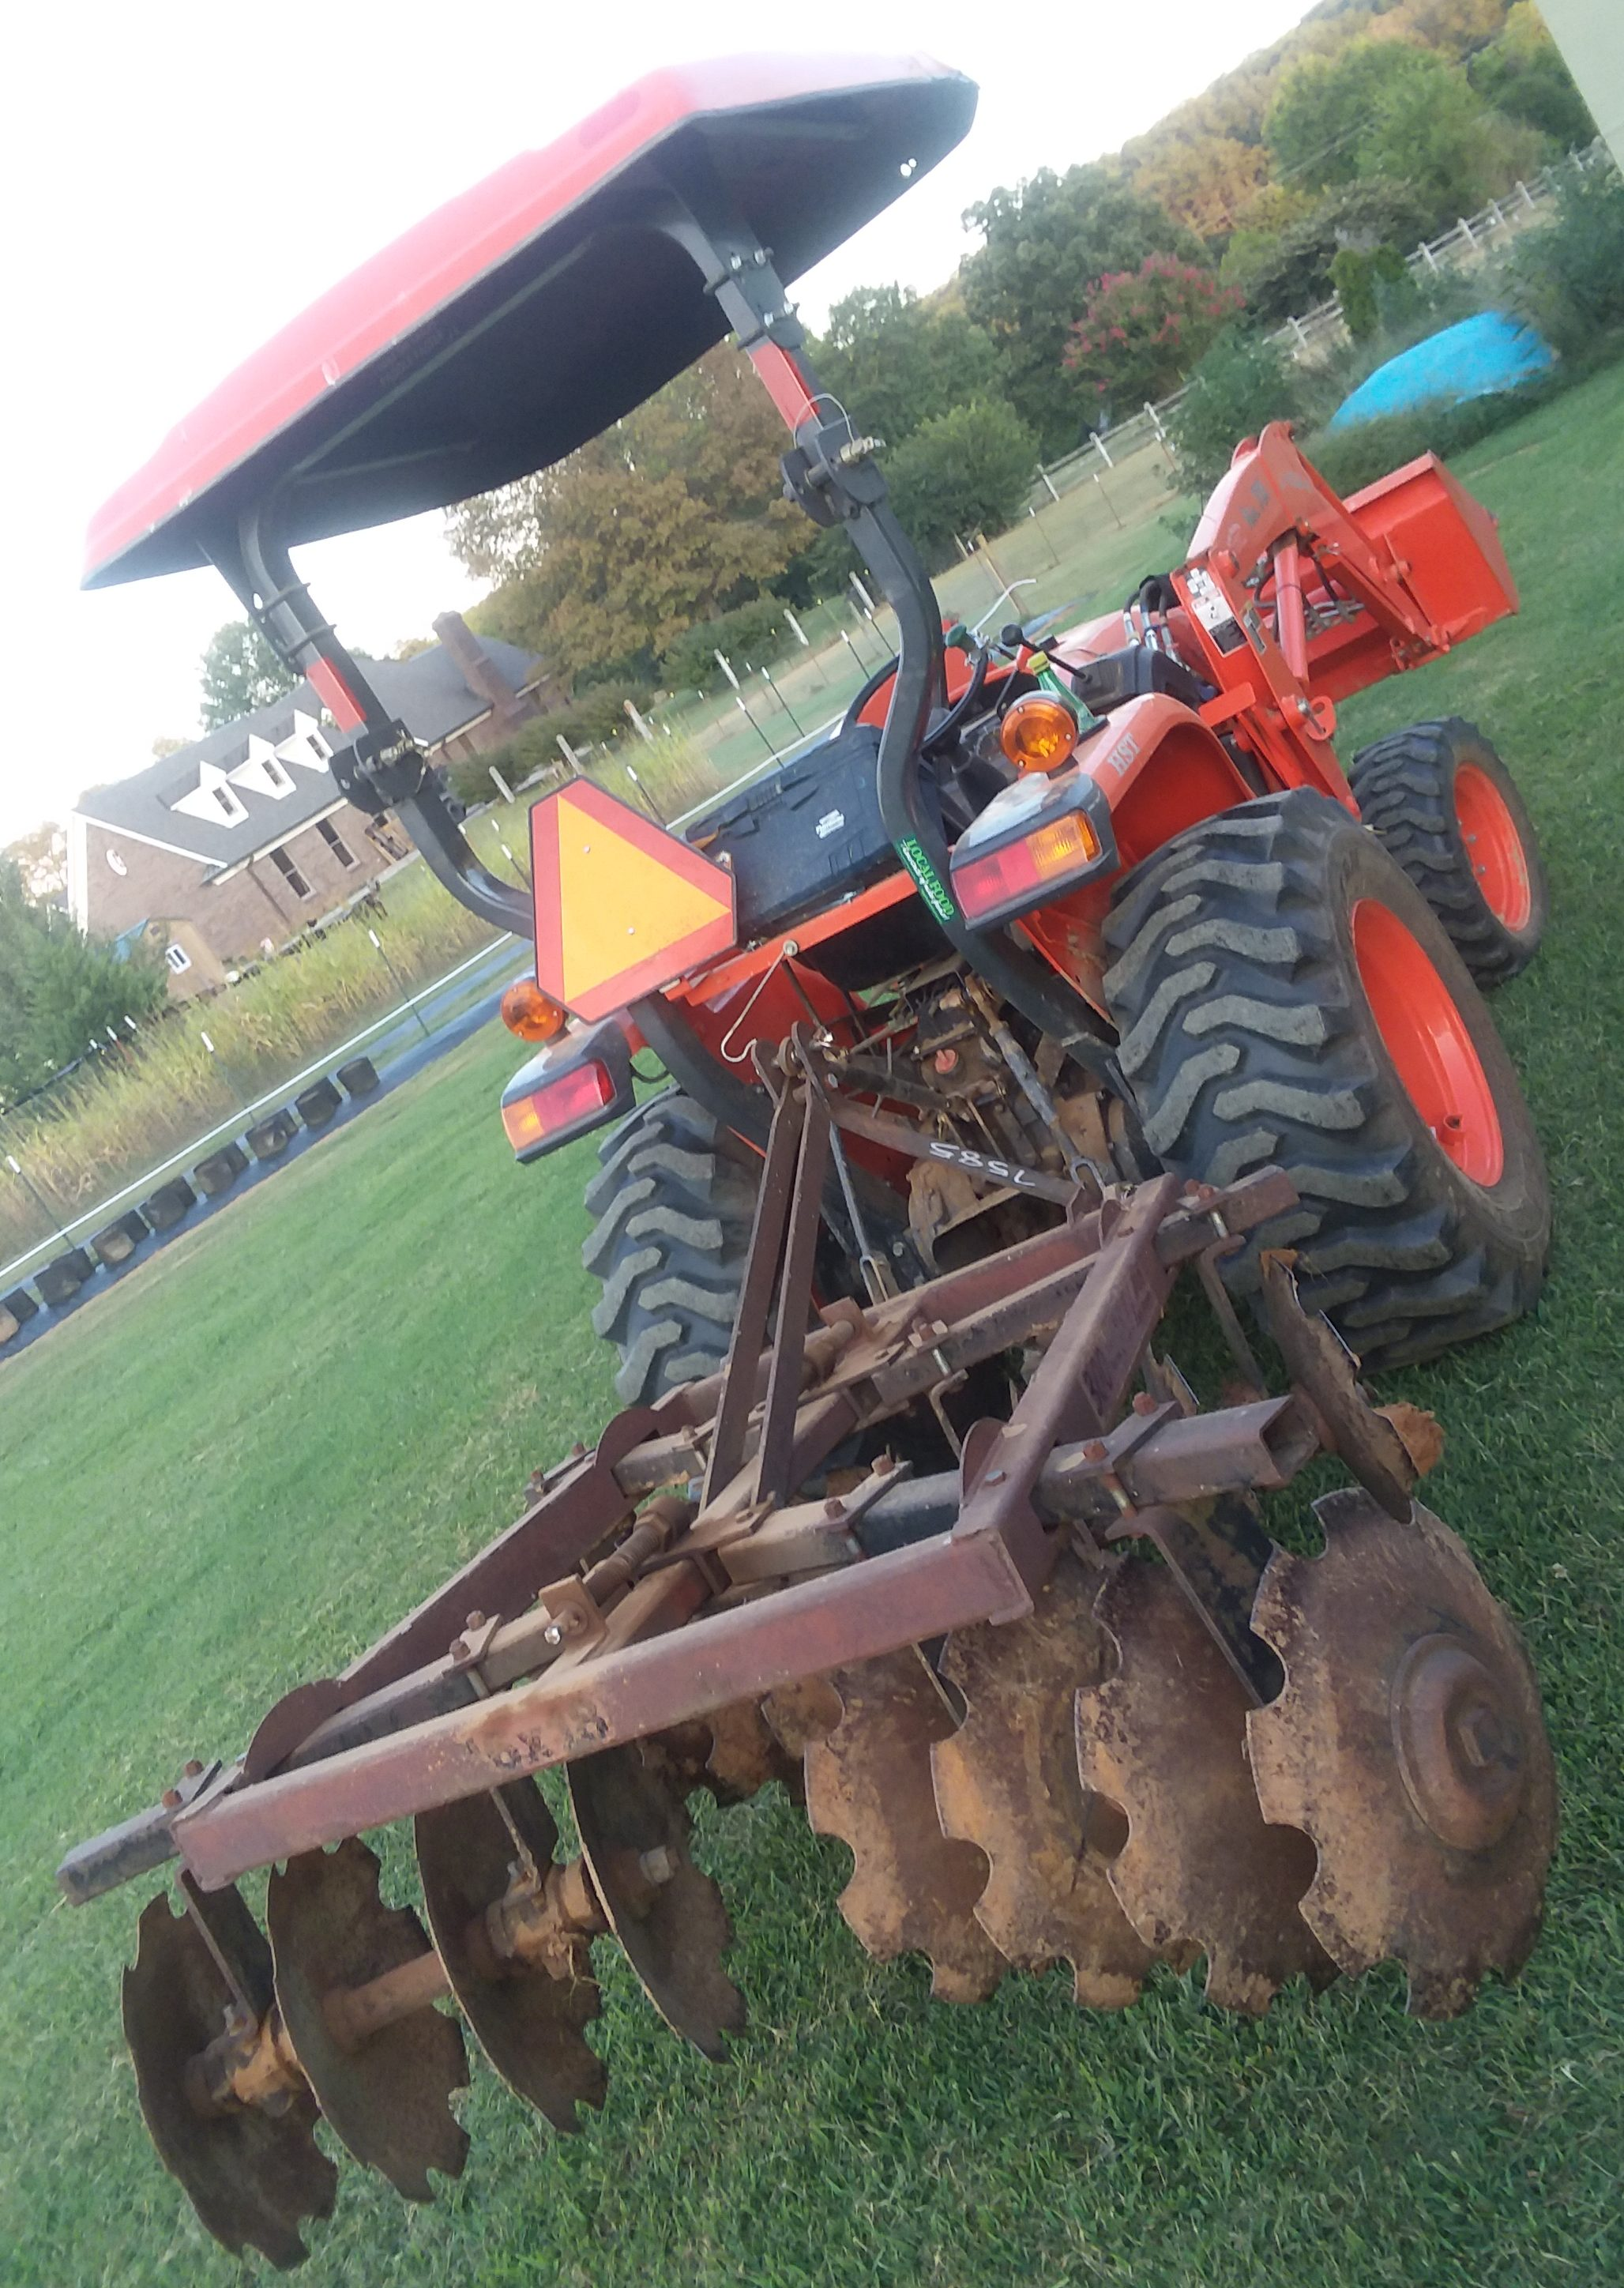 This is how the disc harrow looks when mounted to our Kubota L3800. The harrow weighs about 300 pounds and is about 6 at it's widest point so it's a good fit.